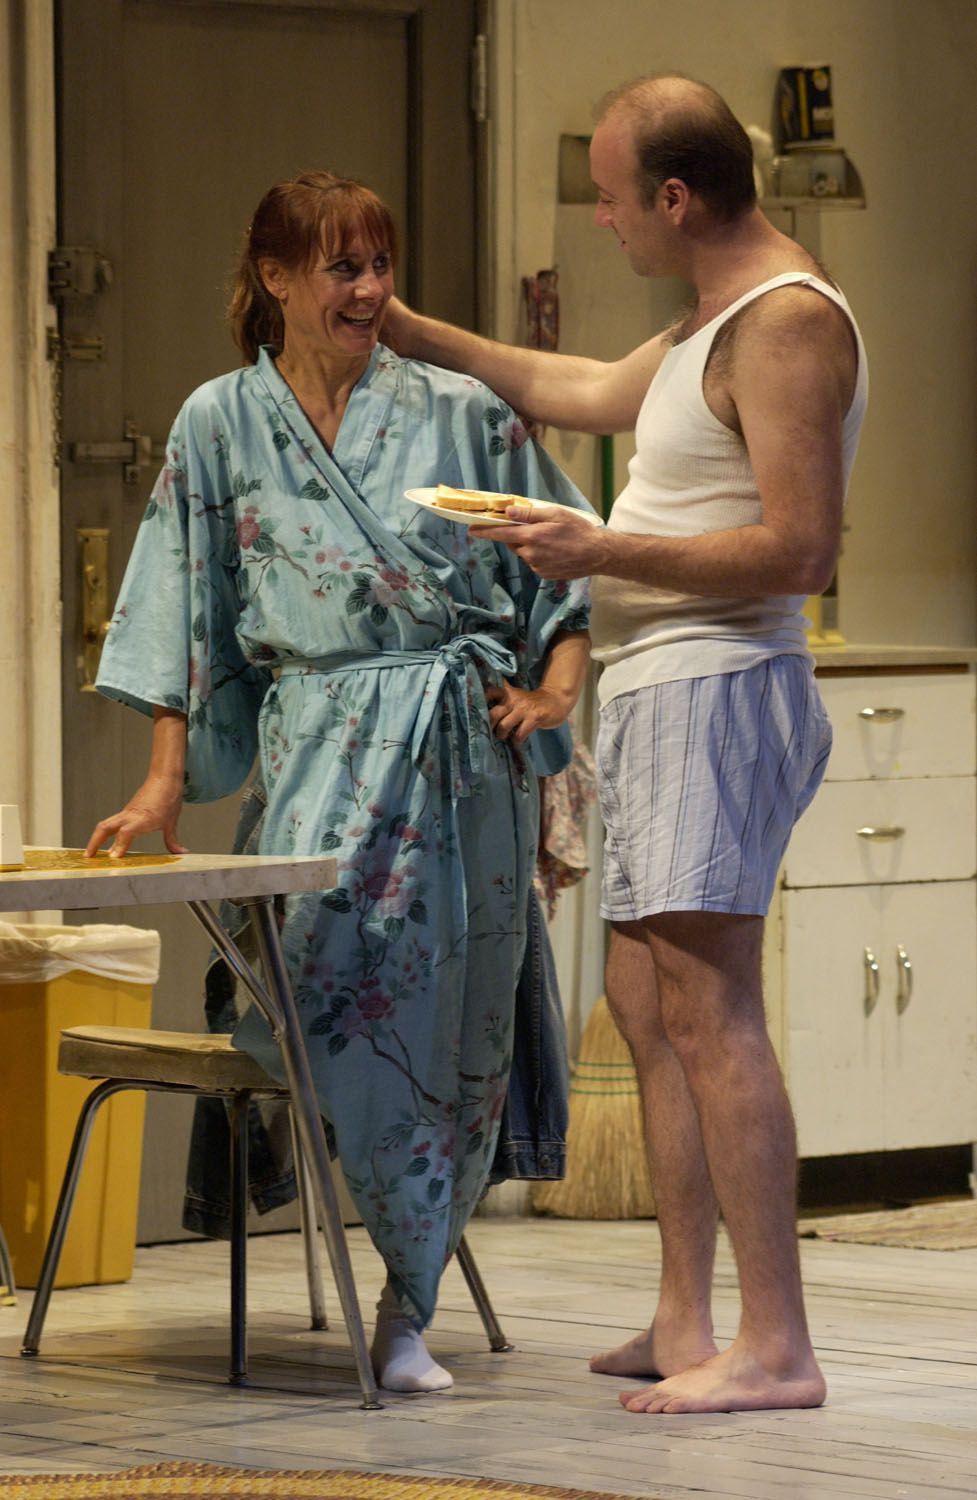 Frankie and Johnny in the Clair de Lune by Terrence McNally, directed by ensemble member Austin Pendleton, featuring ensemble members Laurie Metcalf and Yasen Peyankov, running at Steppenwolf through August 29.